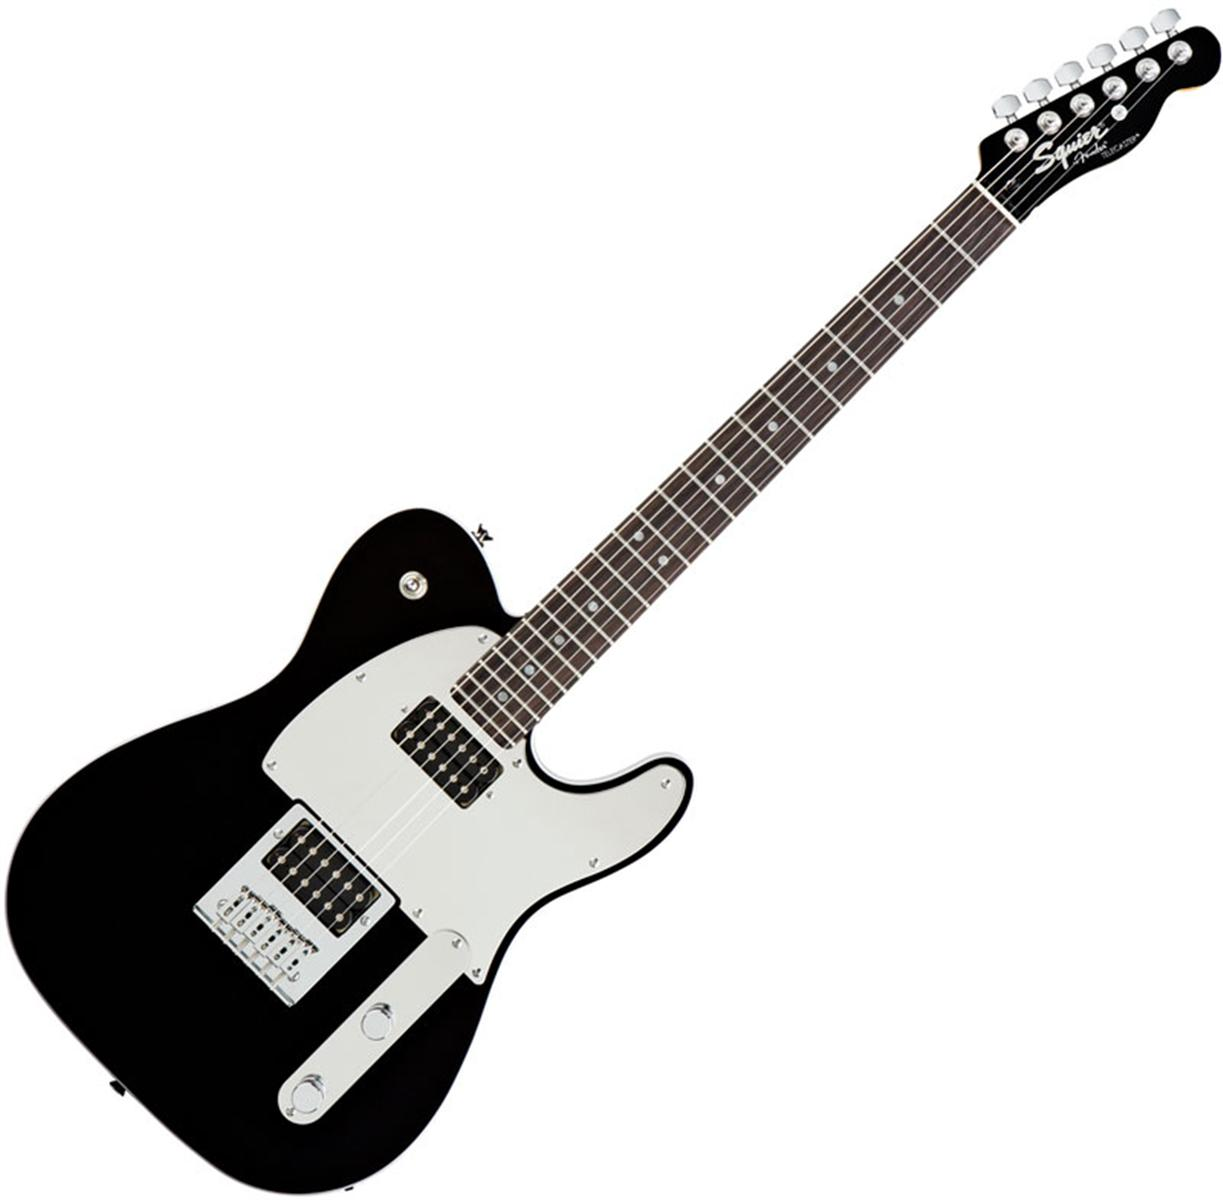 Blue Guitar Clipart Products26213 1200x1200 265656 Jpg